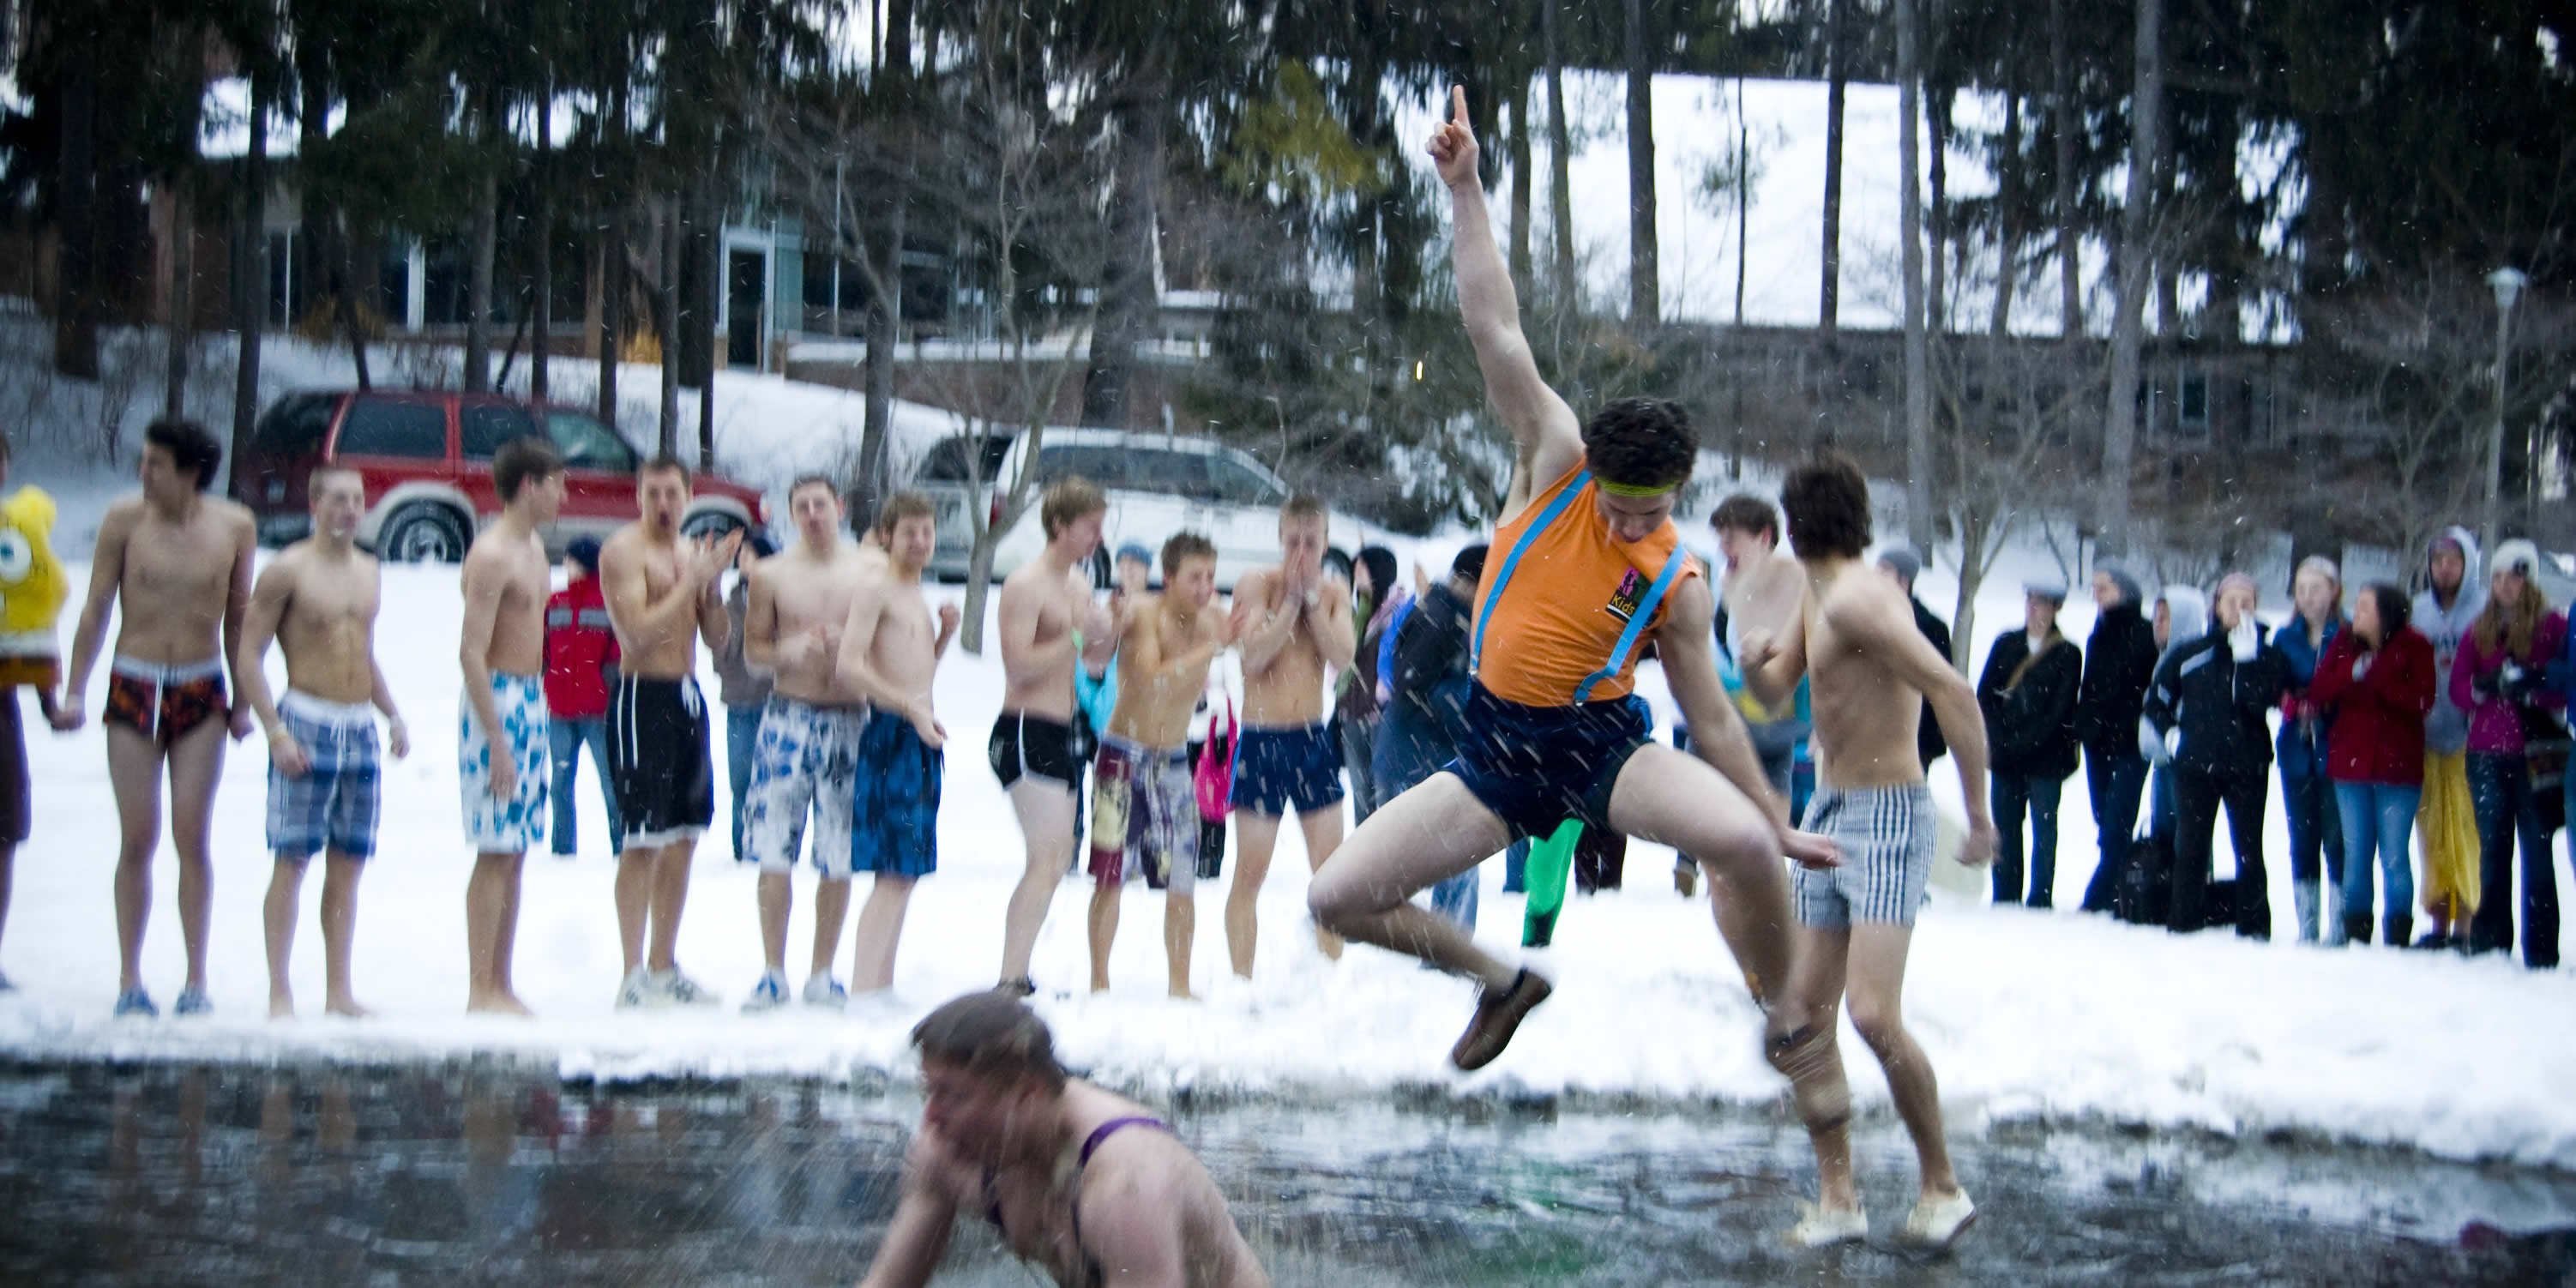 400-plus people gathered at the Calvin Seminary late Friday afternoon, Feb. 20 for the annual Sem Pond Jump.